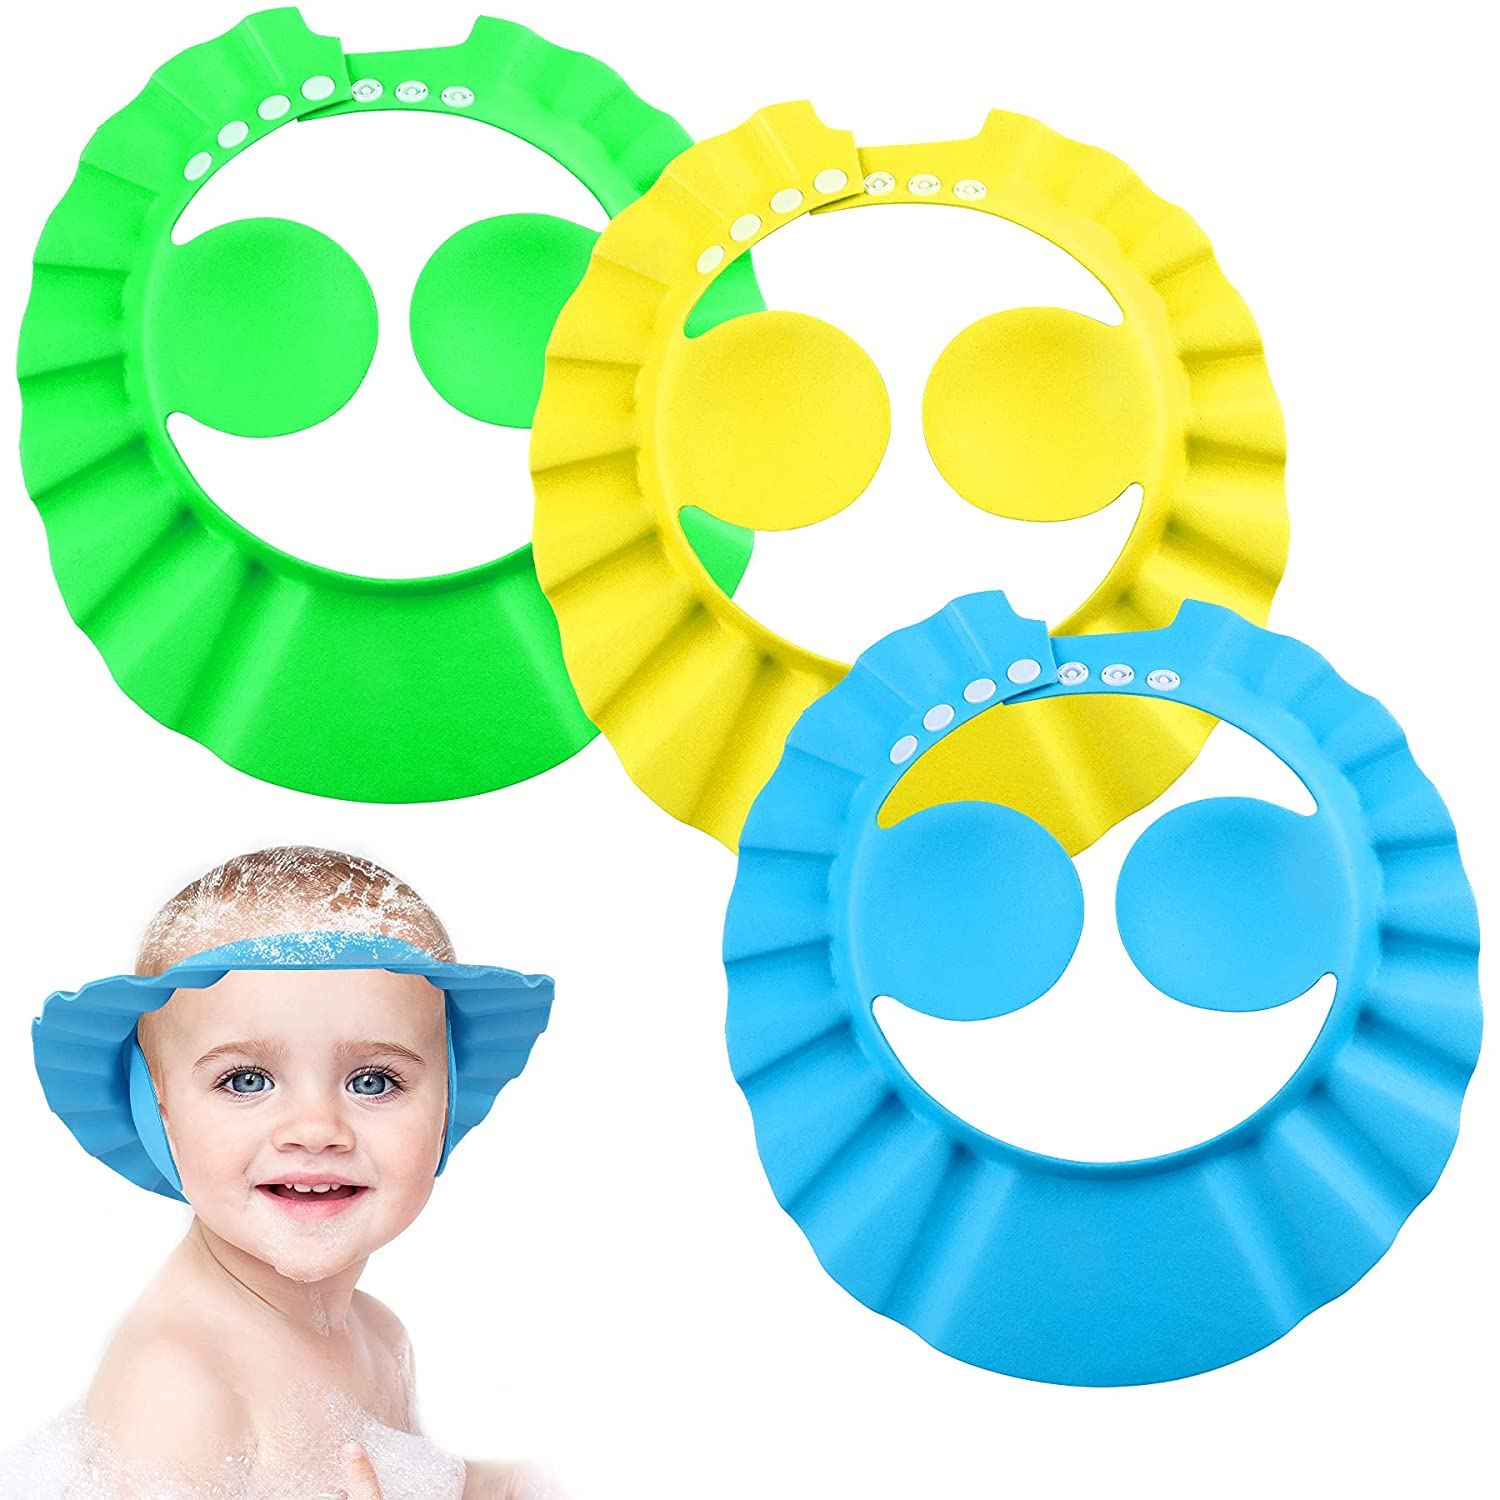 Baby Shower Cap for Boy Adjustable Toddler Bath Shampoo Hat with Ear Protection 3Pcs Children Wash Hair Foam Shield Hats Protect Your Baby Eyes